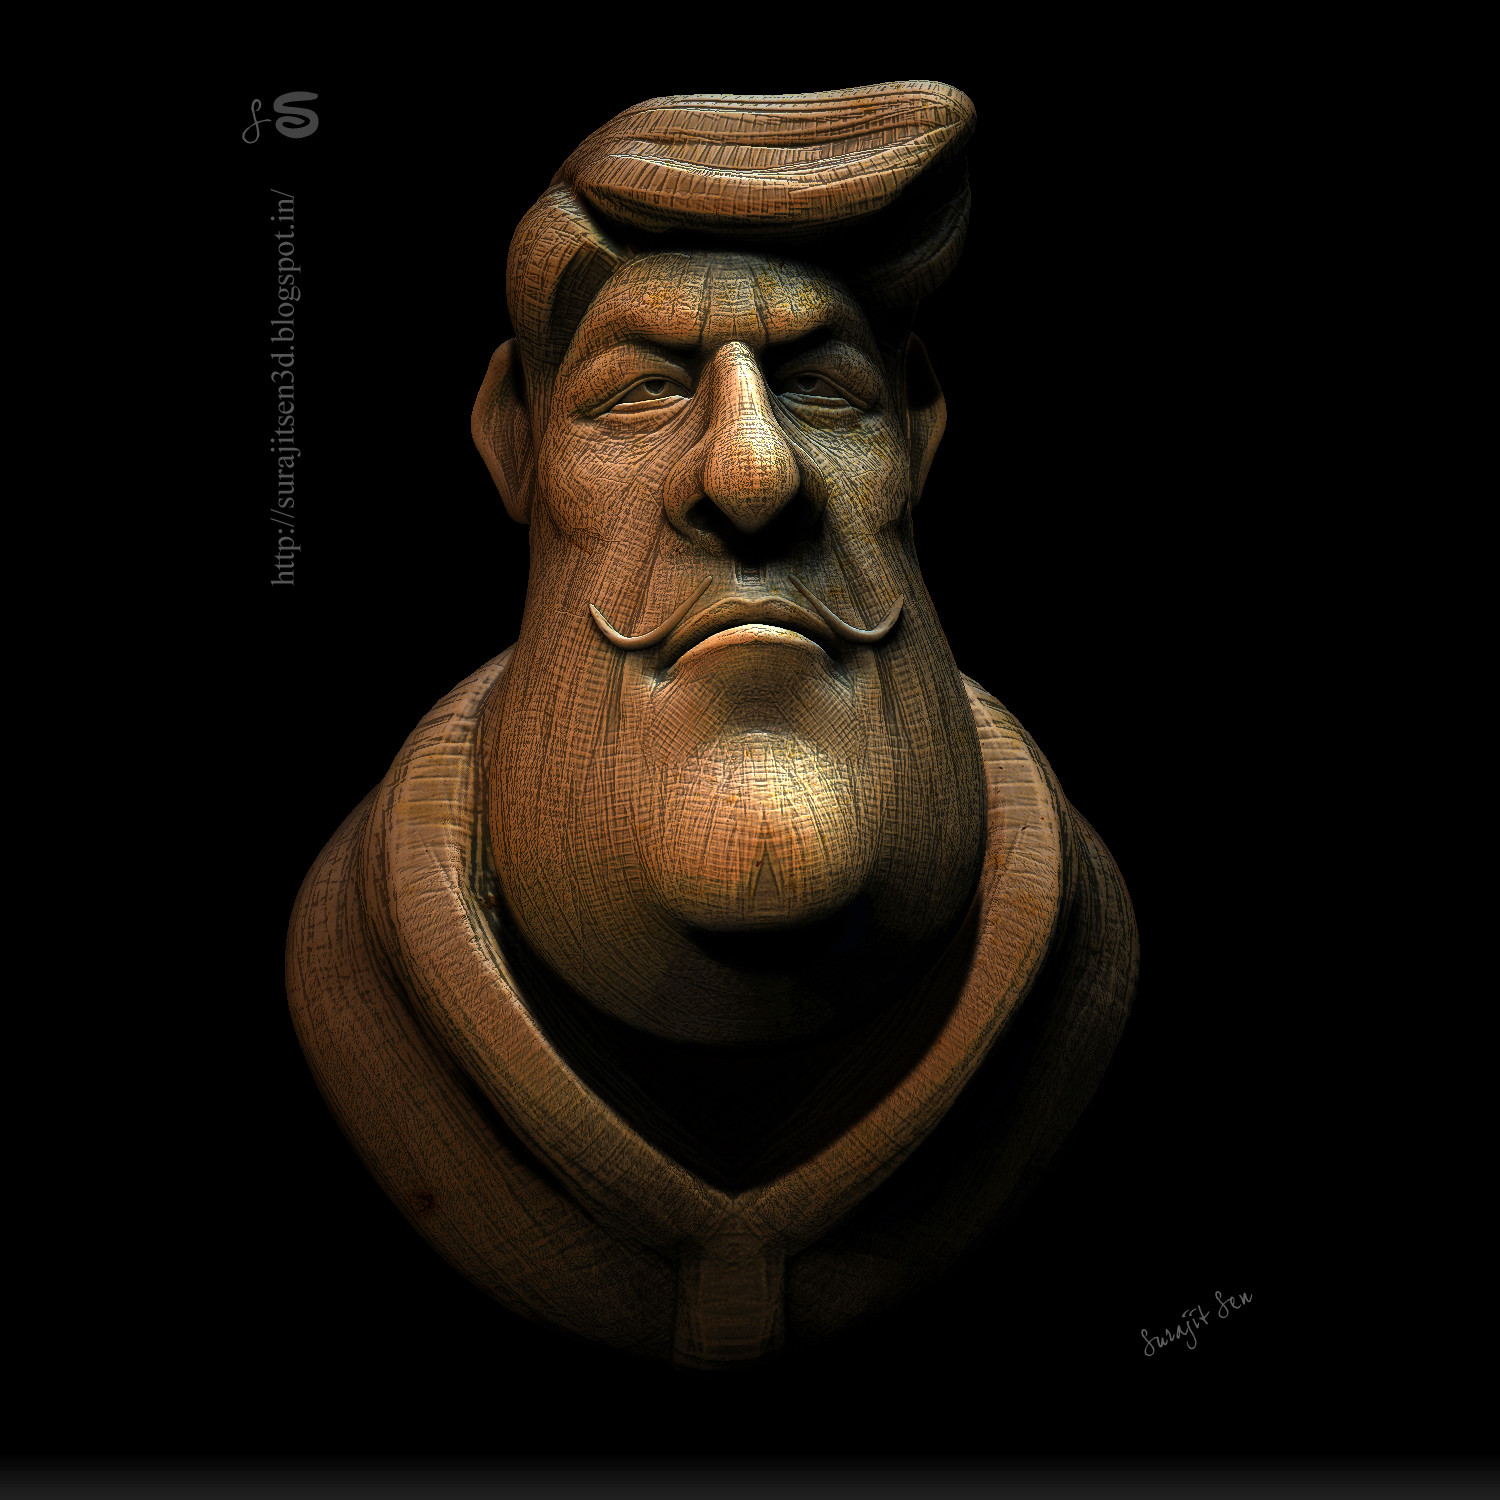 #doodle  #quicksculpt My Weekend doodle ........fun with brushes!...;)